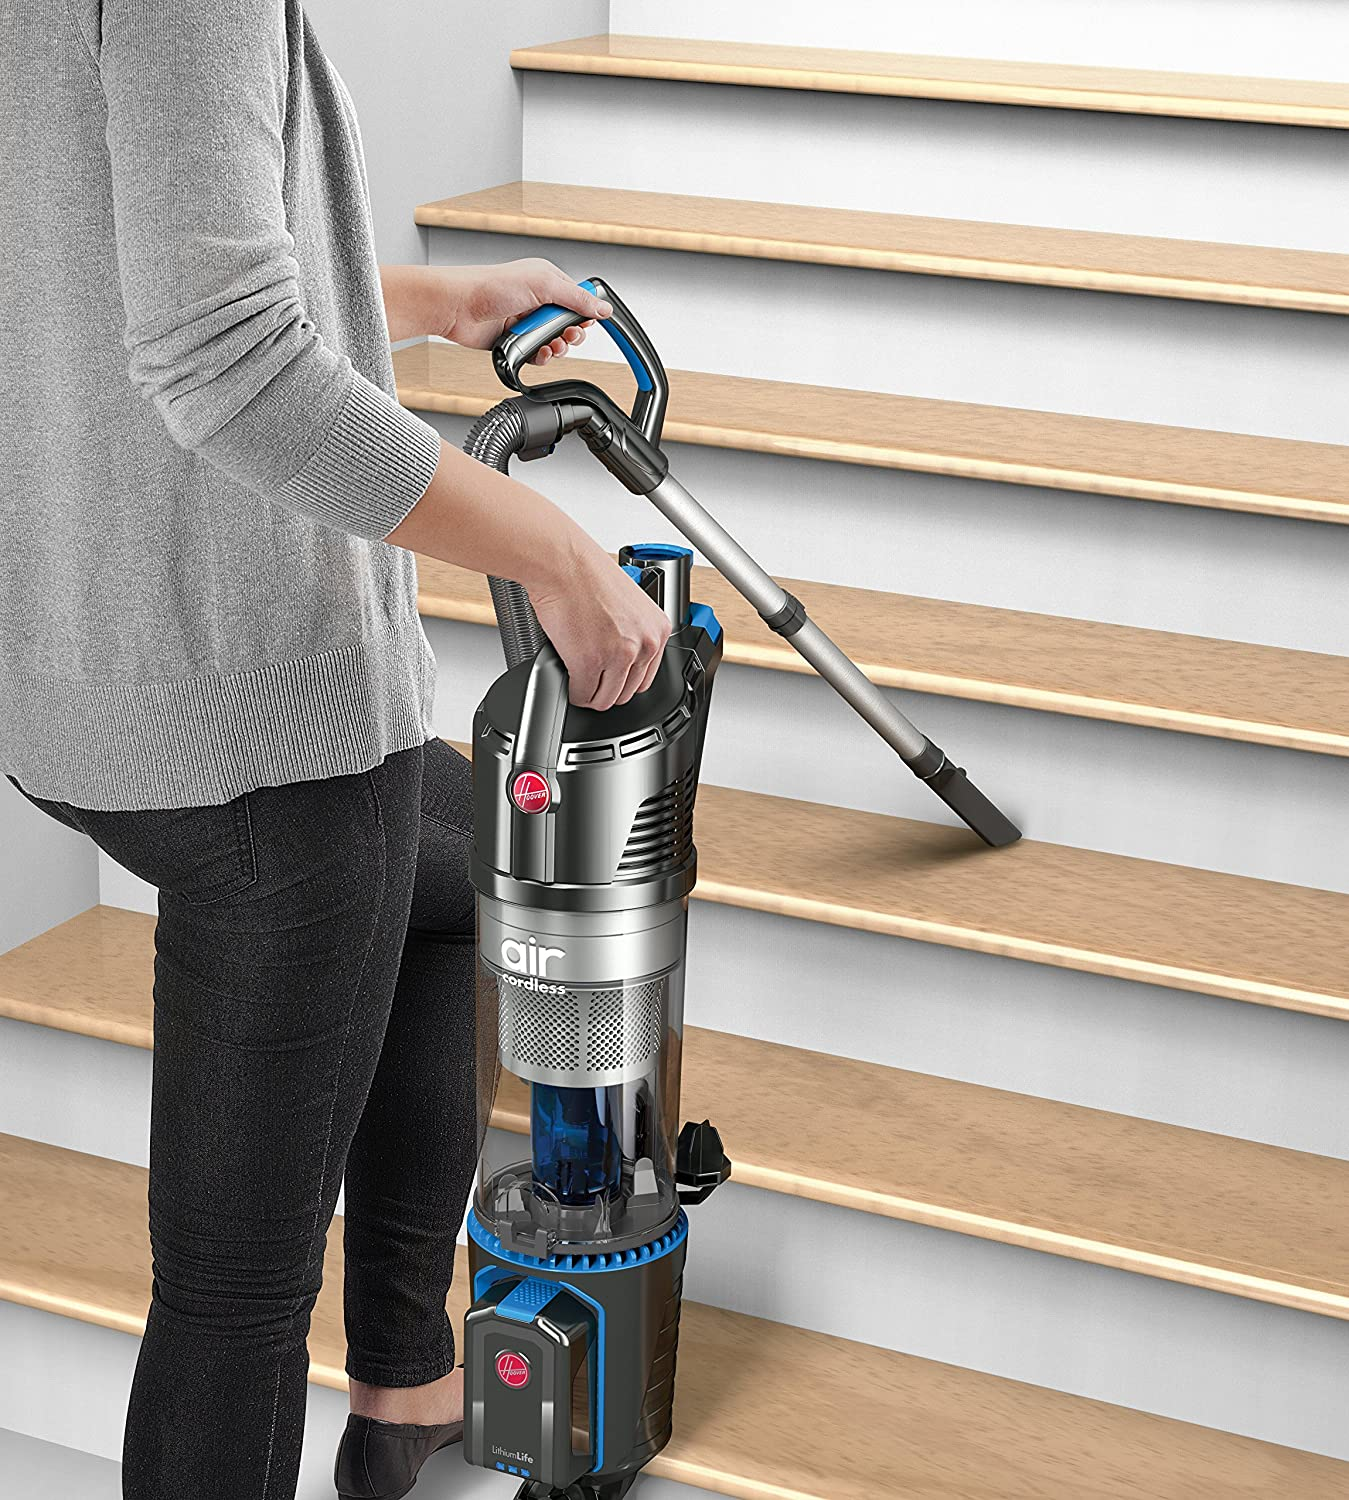 Hoover Air Cordless Series 3.0 Bagless Upright